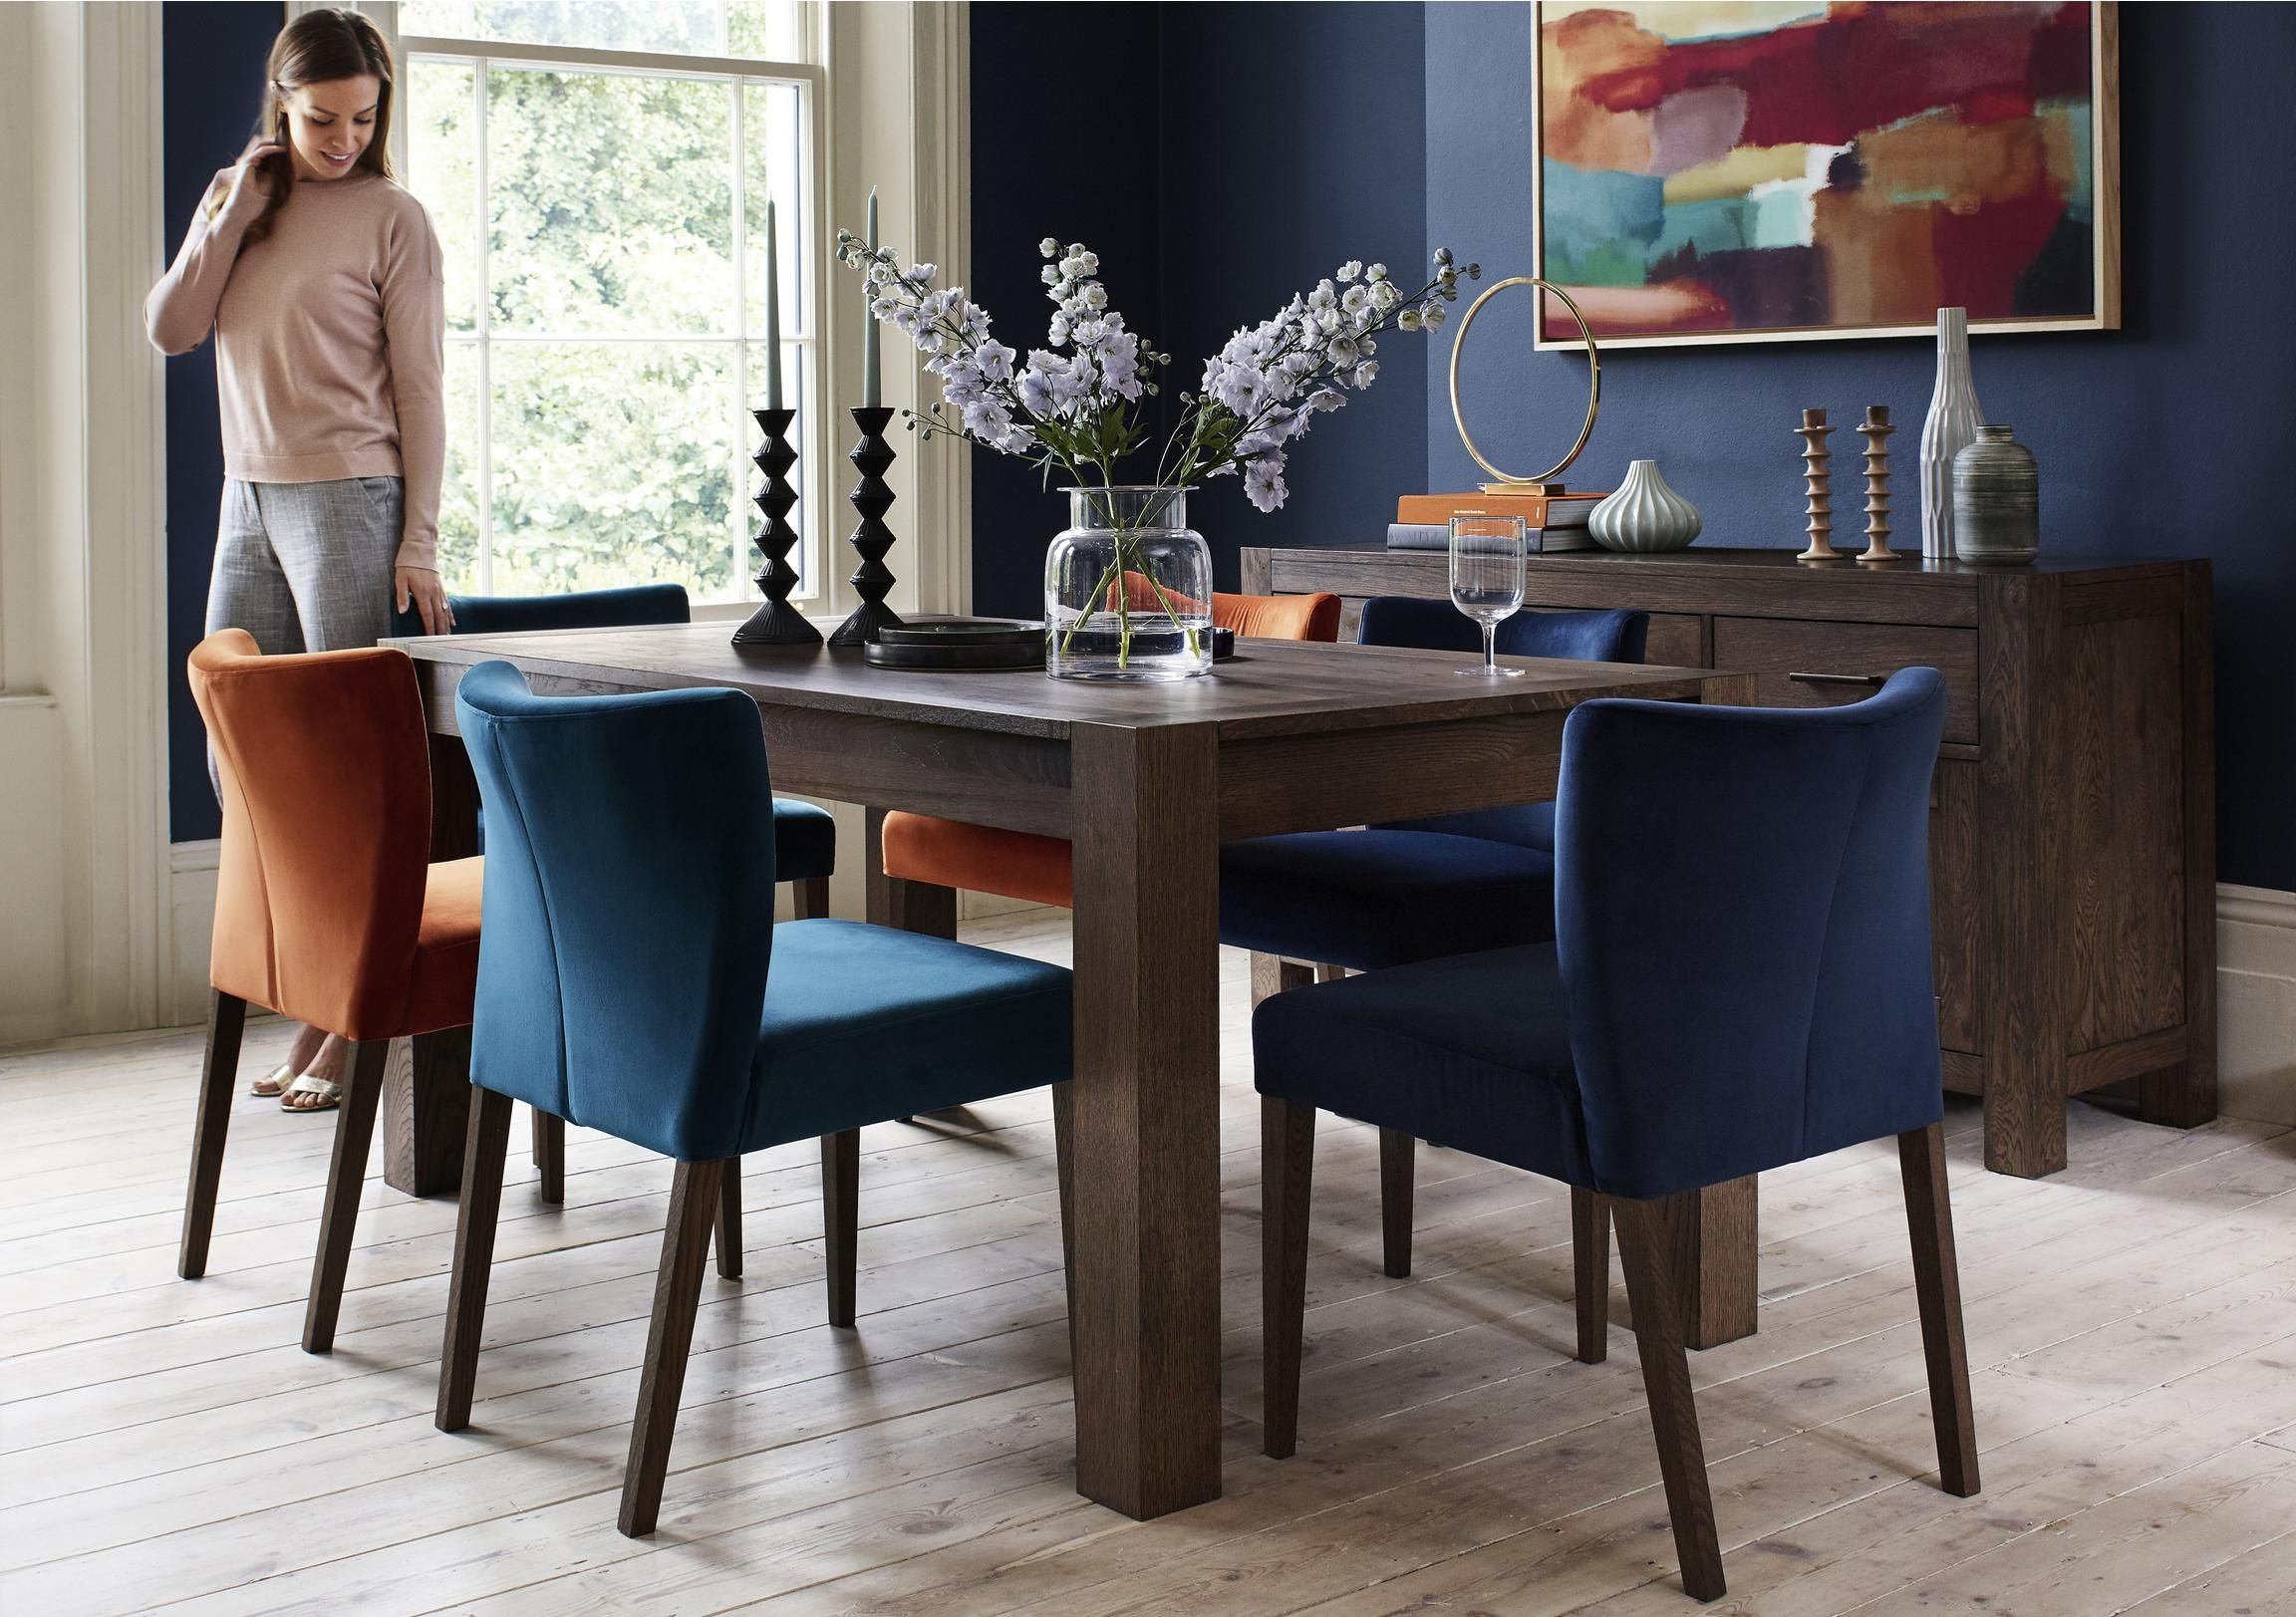 Havana Large Table And 4 Fabric Chairs Large Dining Table Contemporary Dining Sets Large Table